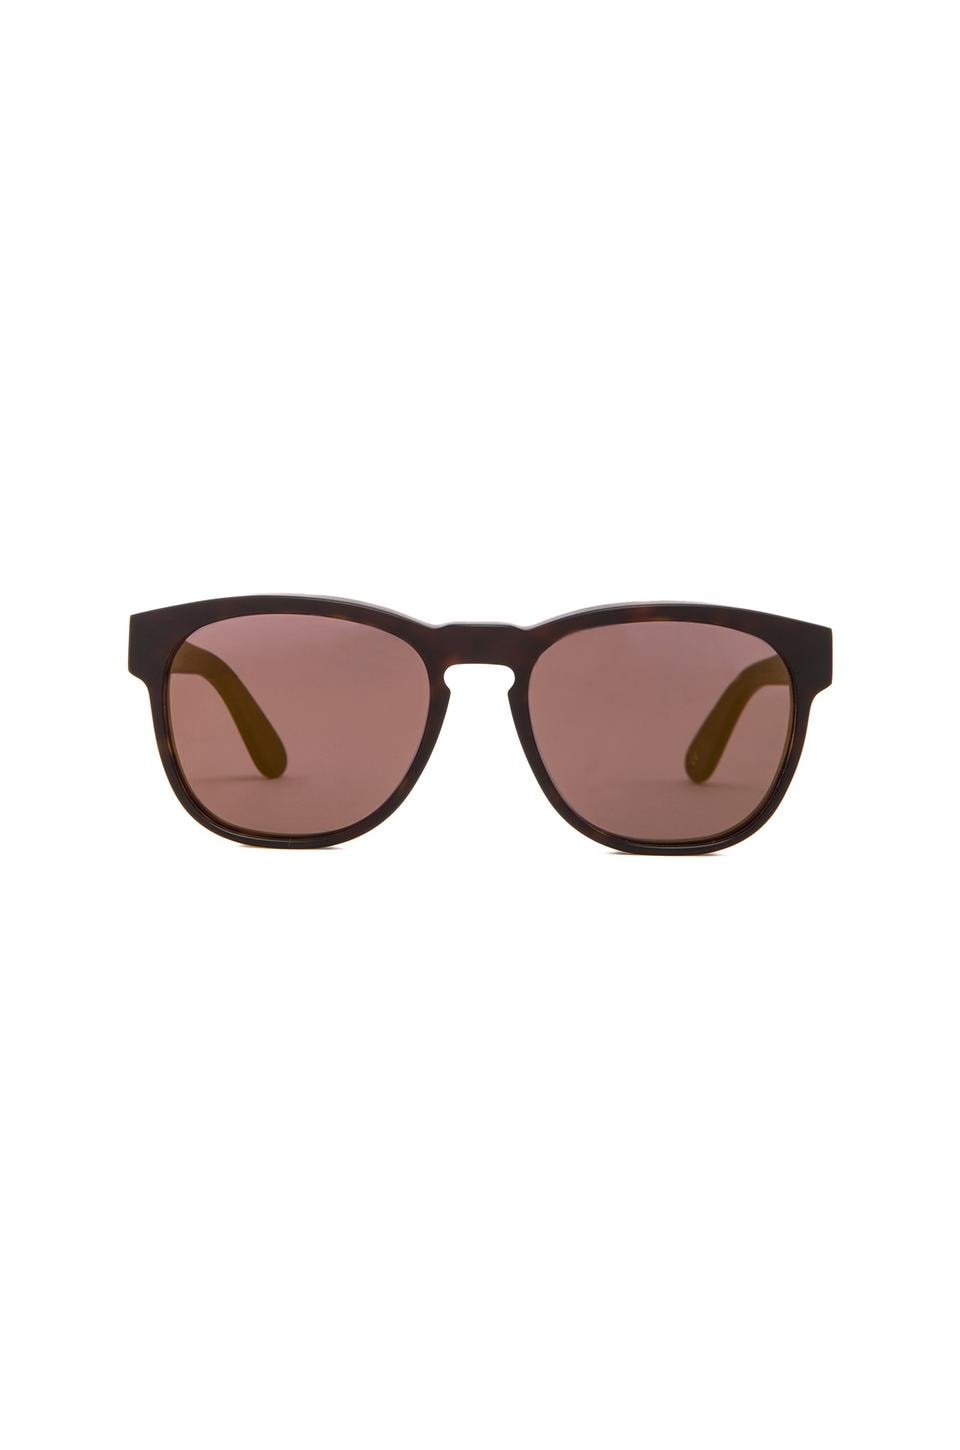 Wildfox Couture Classic Fox 2 Sunglasses in Matte Tortoise & Gold